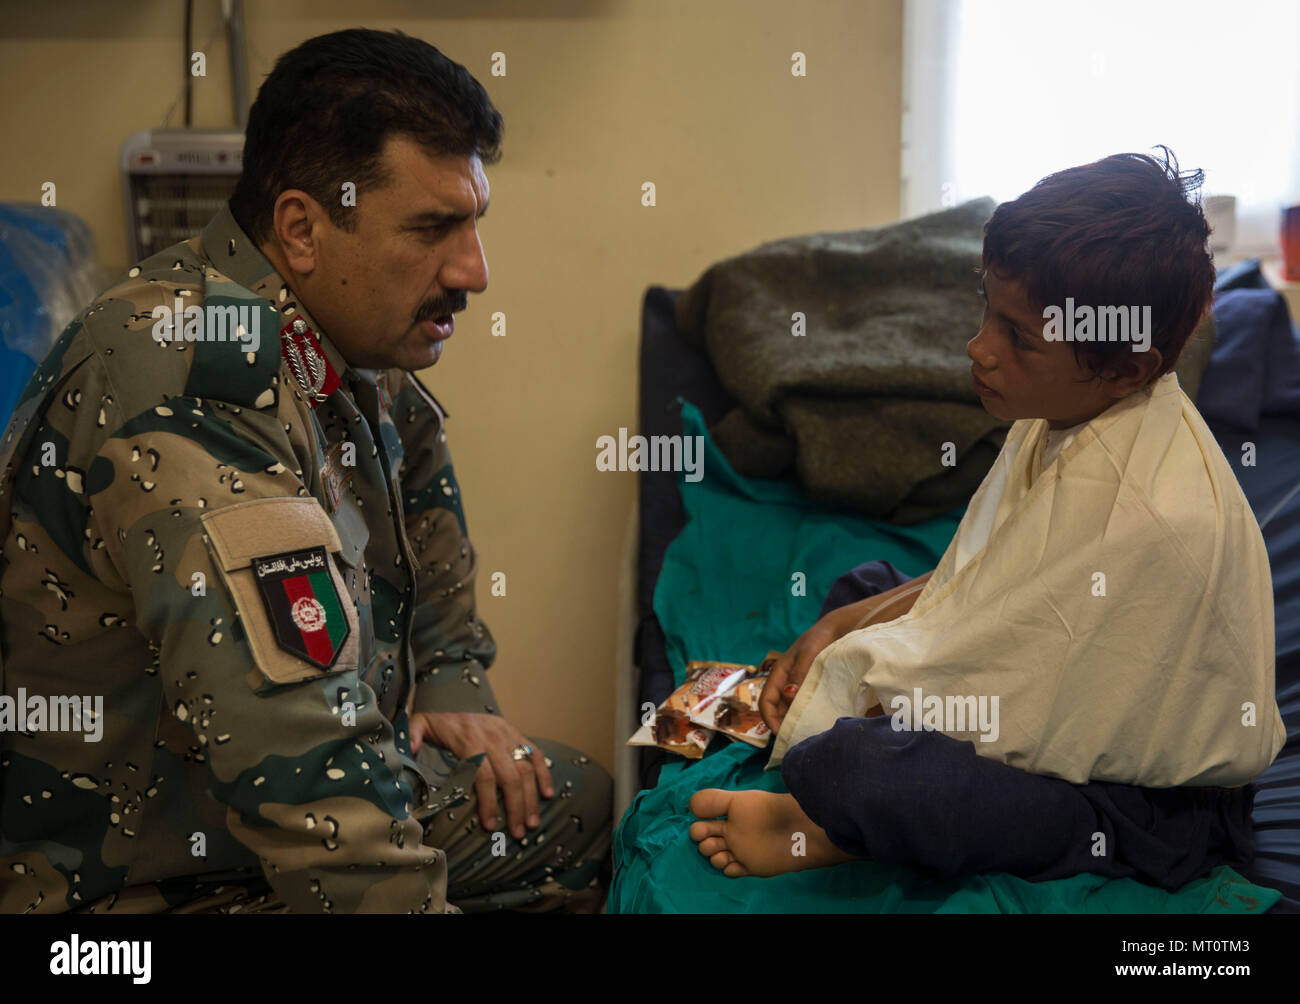 General Daud Ghulam Tarakhel, the commanding general of the 505th Zone National Police, pays a visit to the young boy who was injured during a Taliban rocket attack just outside of Bost Airfield, Afghanistan, July 20, 2017. (U.S. Marine Corps photo by Sgt. Justin T. Updegraff) - Stock Image